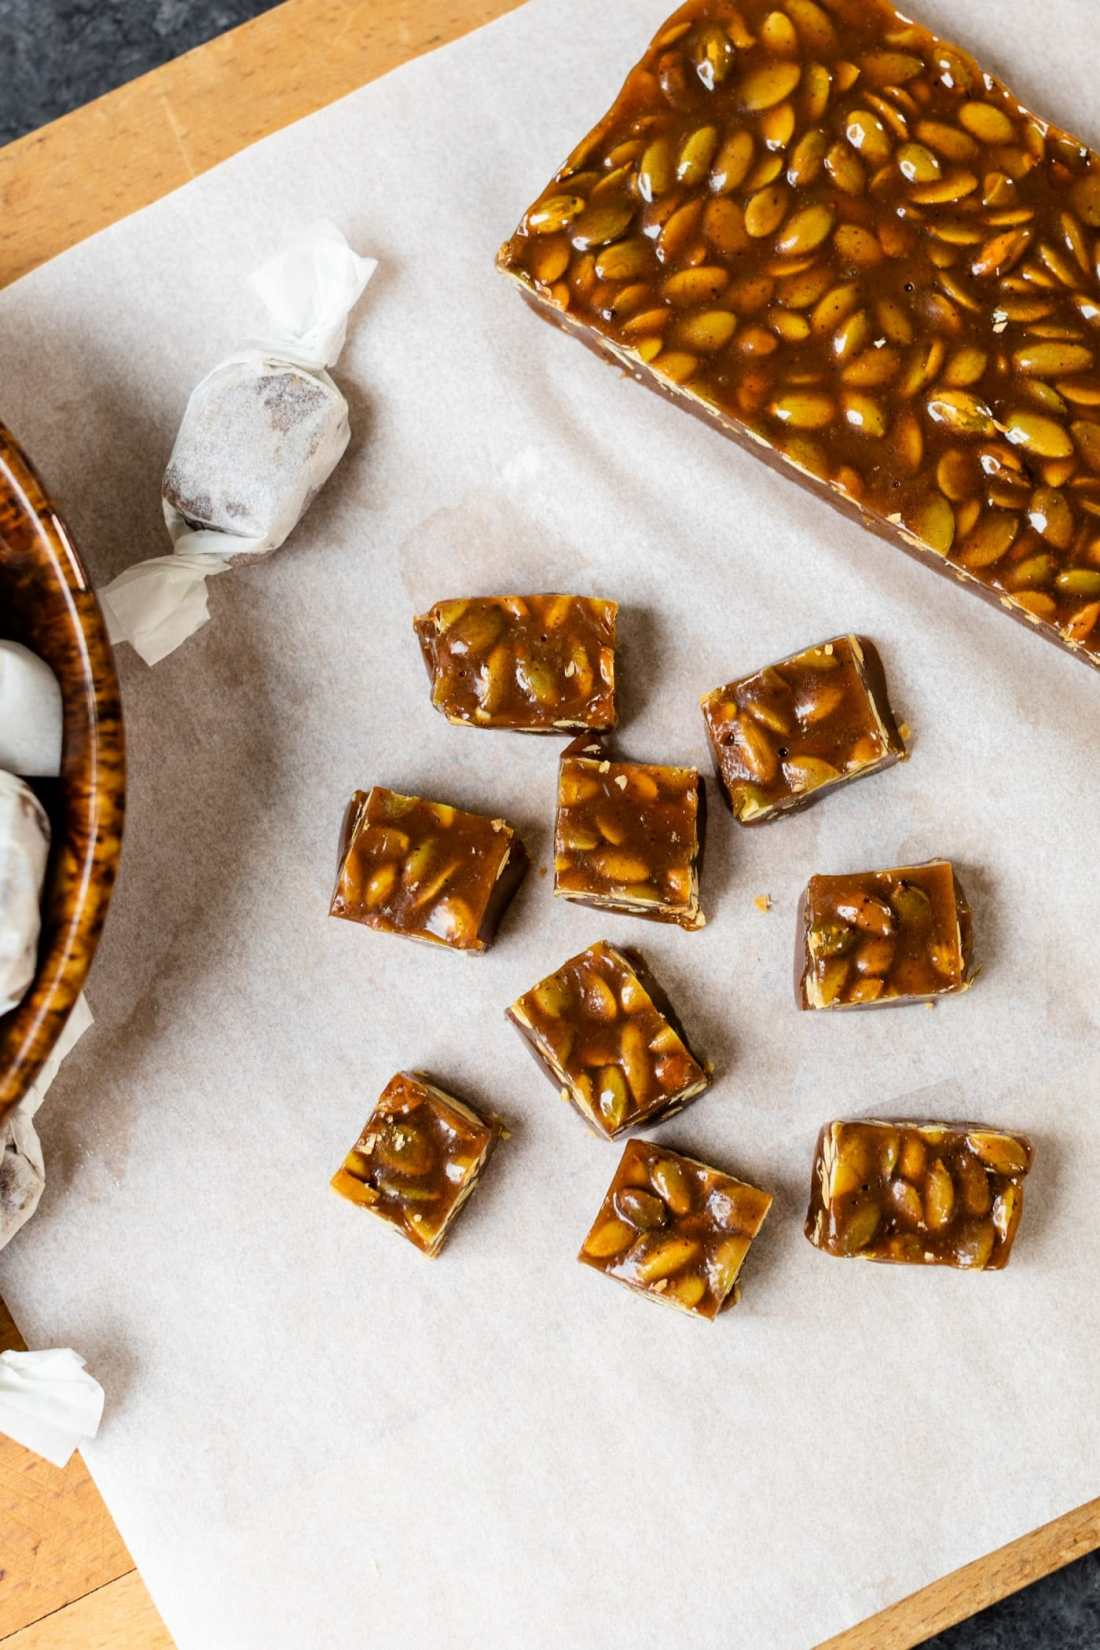 Top down view of pumpkin spice caramels sitting on white parchment on board with bowl containing wrapped caramels all on gray slate surface